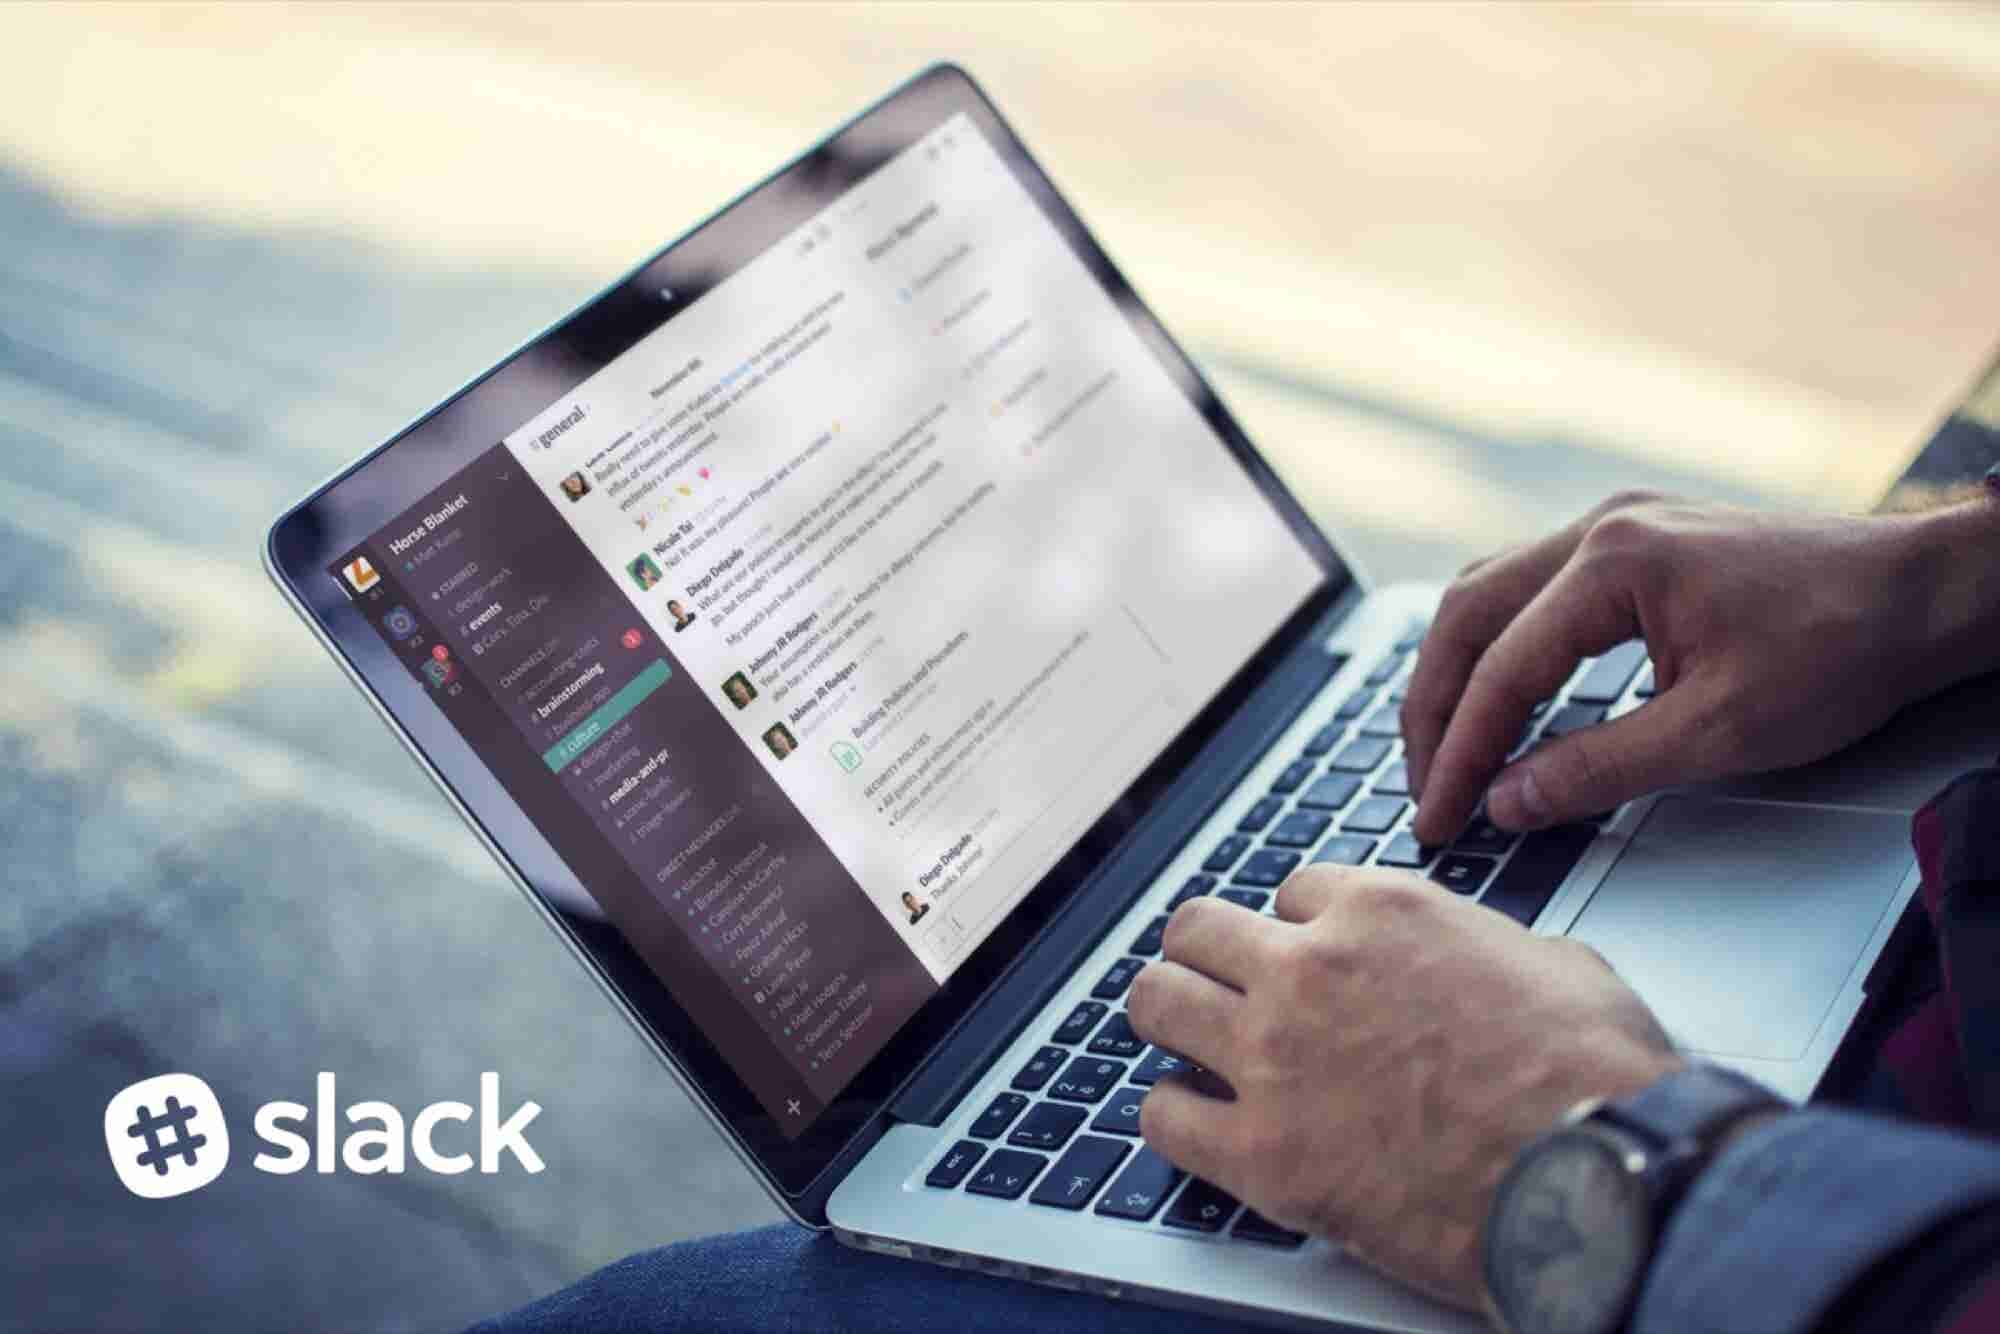 Slack Raises $200 Million, Boosting Valuation to $3.8 Billion